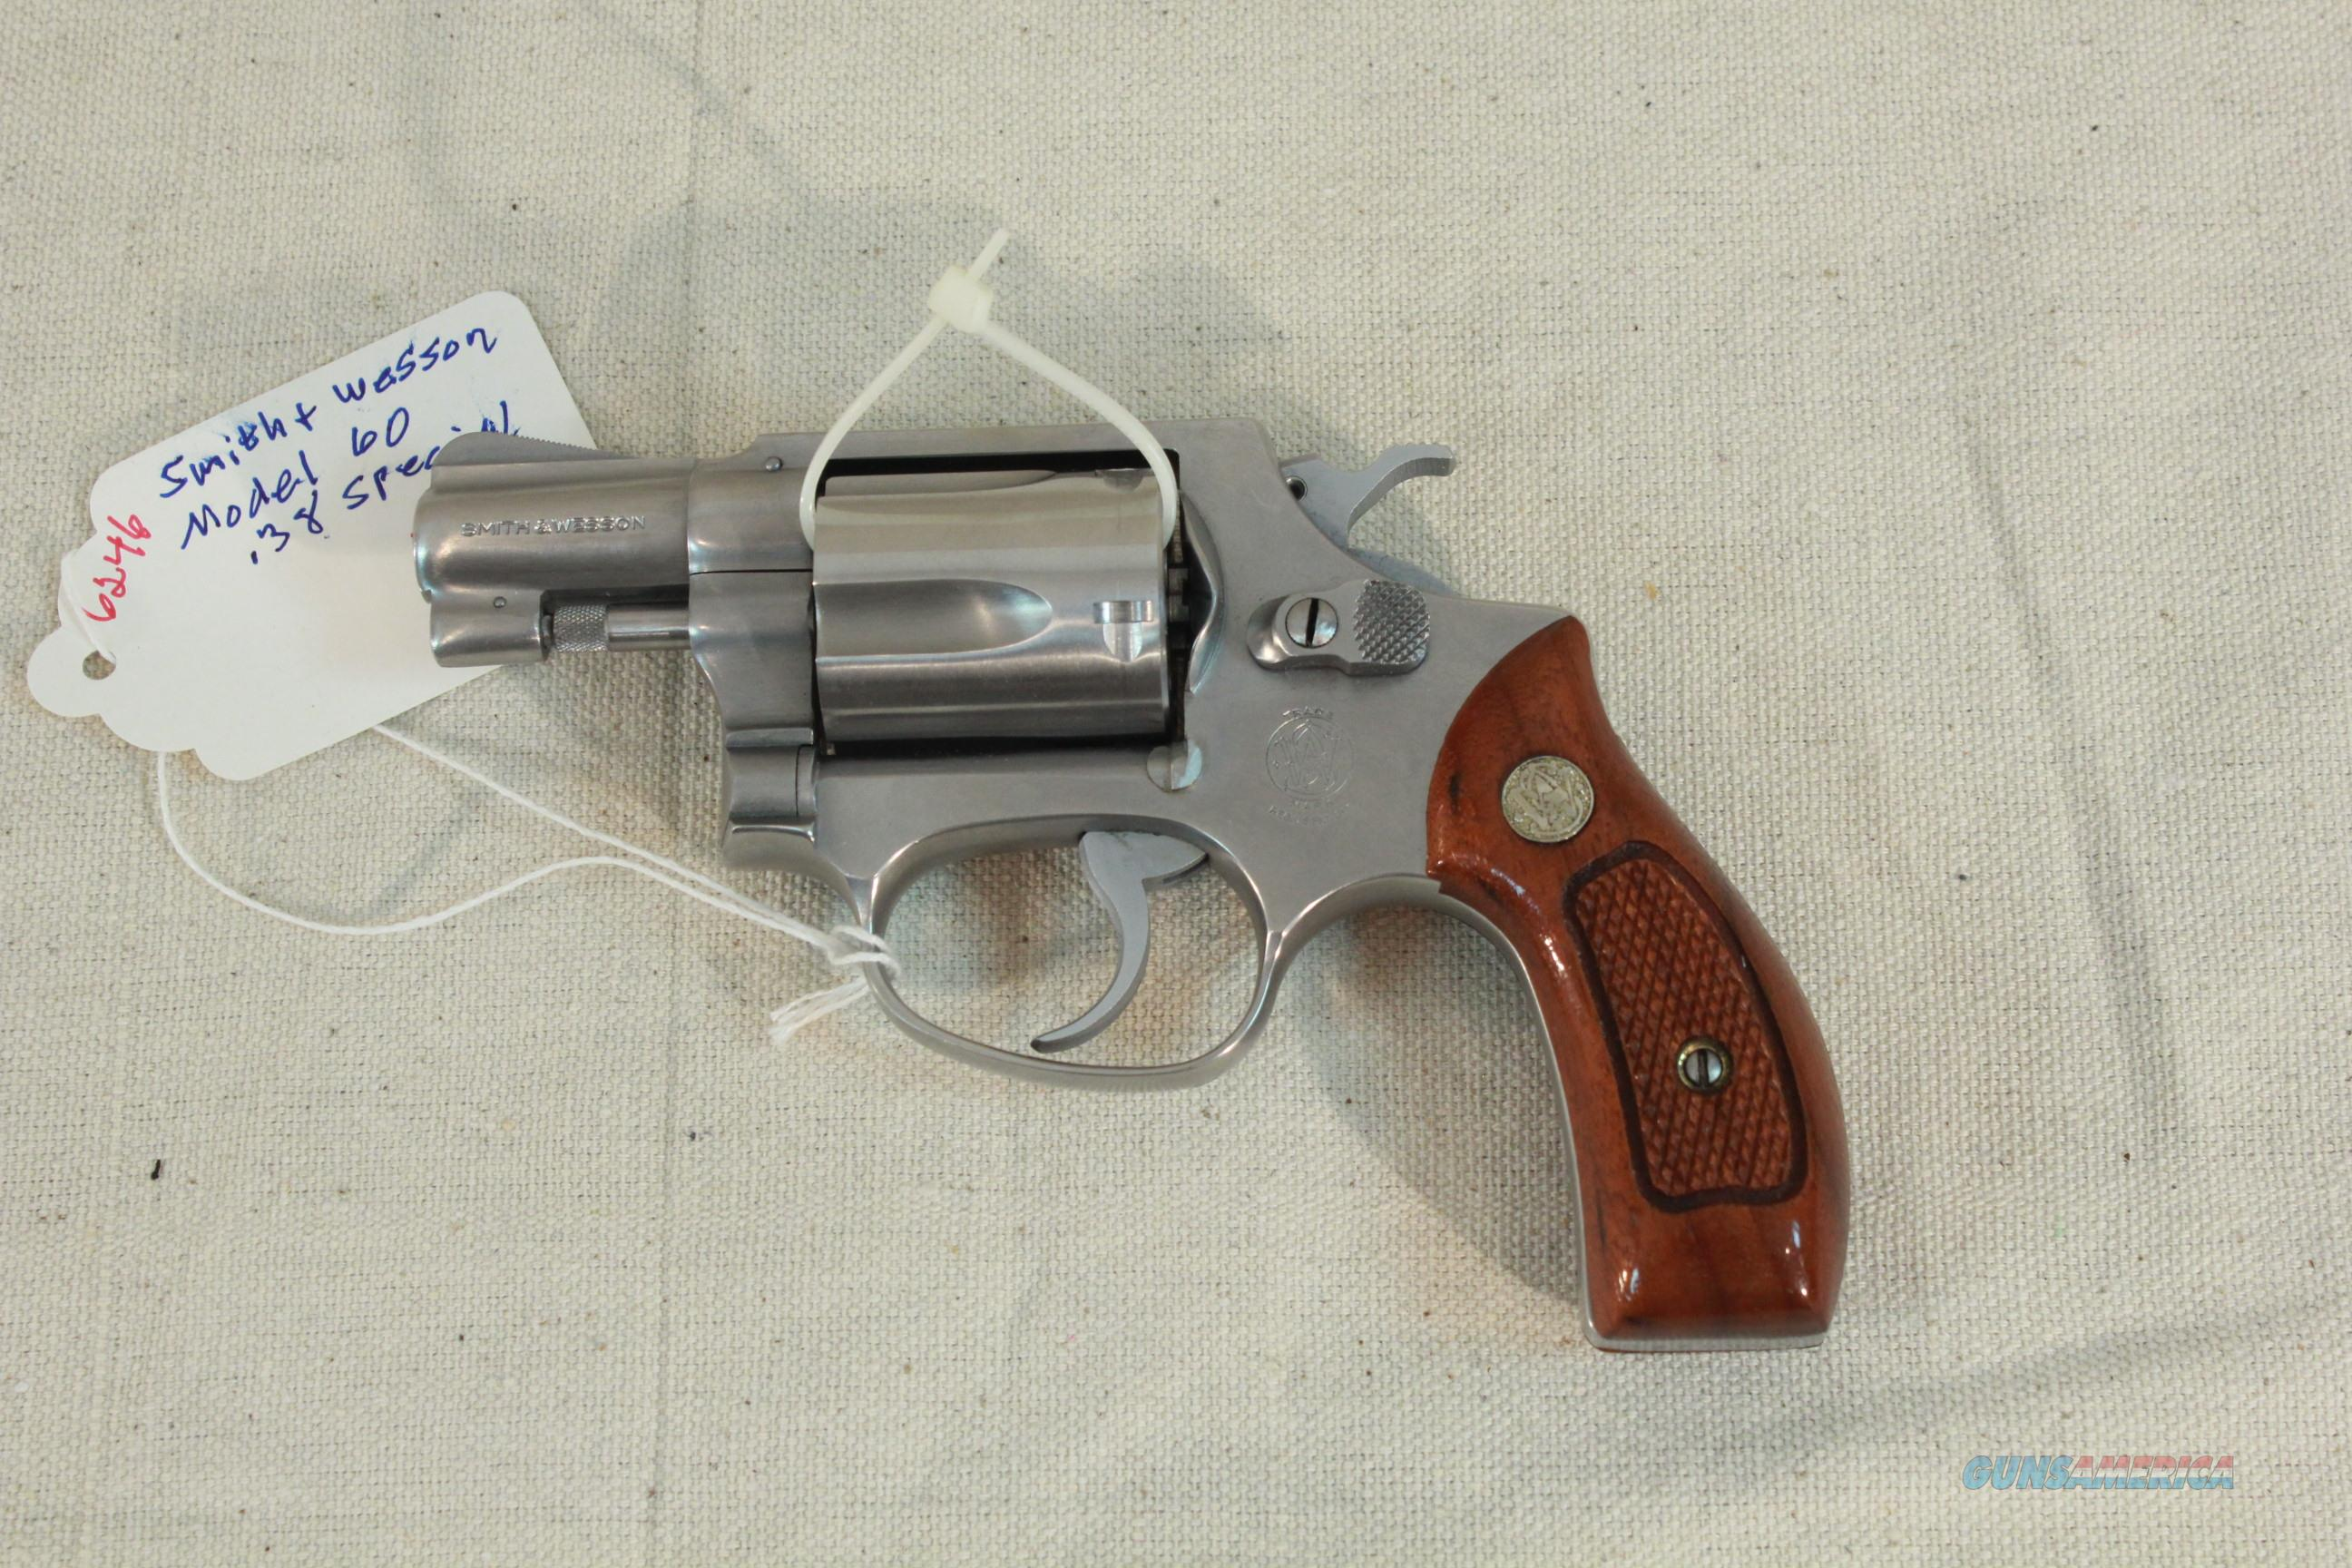 Early Smith & Wesson Model 60 with pinned barrel, wood grips  Guns > Pistols > Smith & Wesson Revolvers > Pocket Pistols